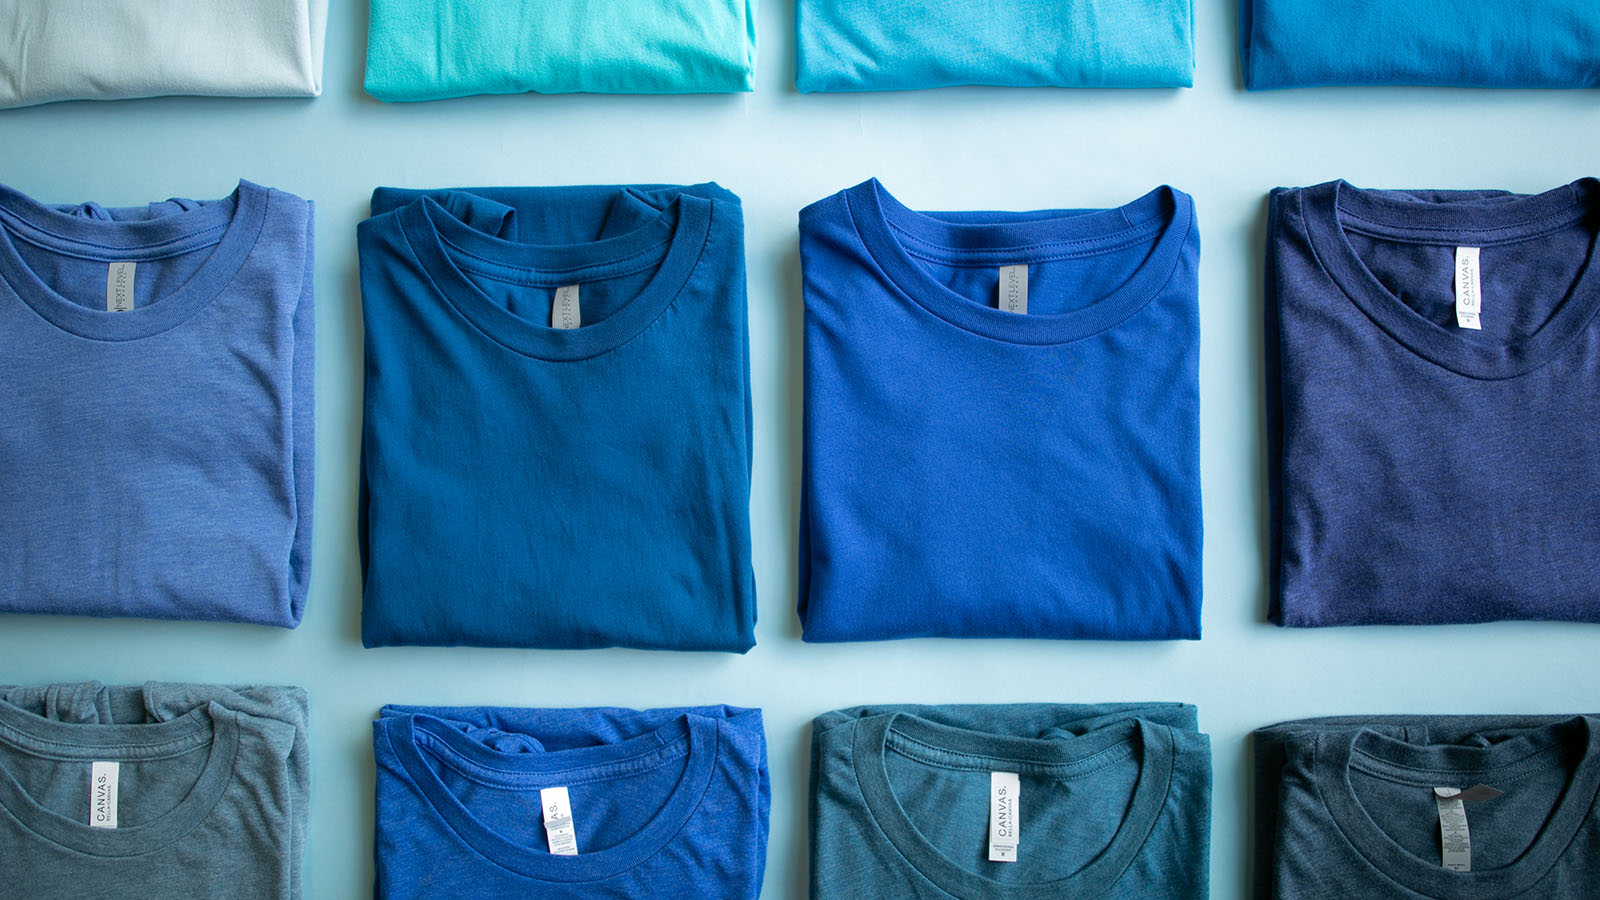 T-Shirt Color Palette: Shades of Blue